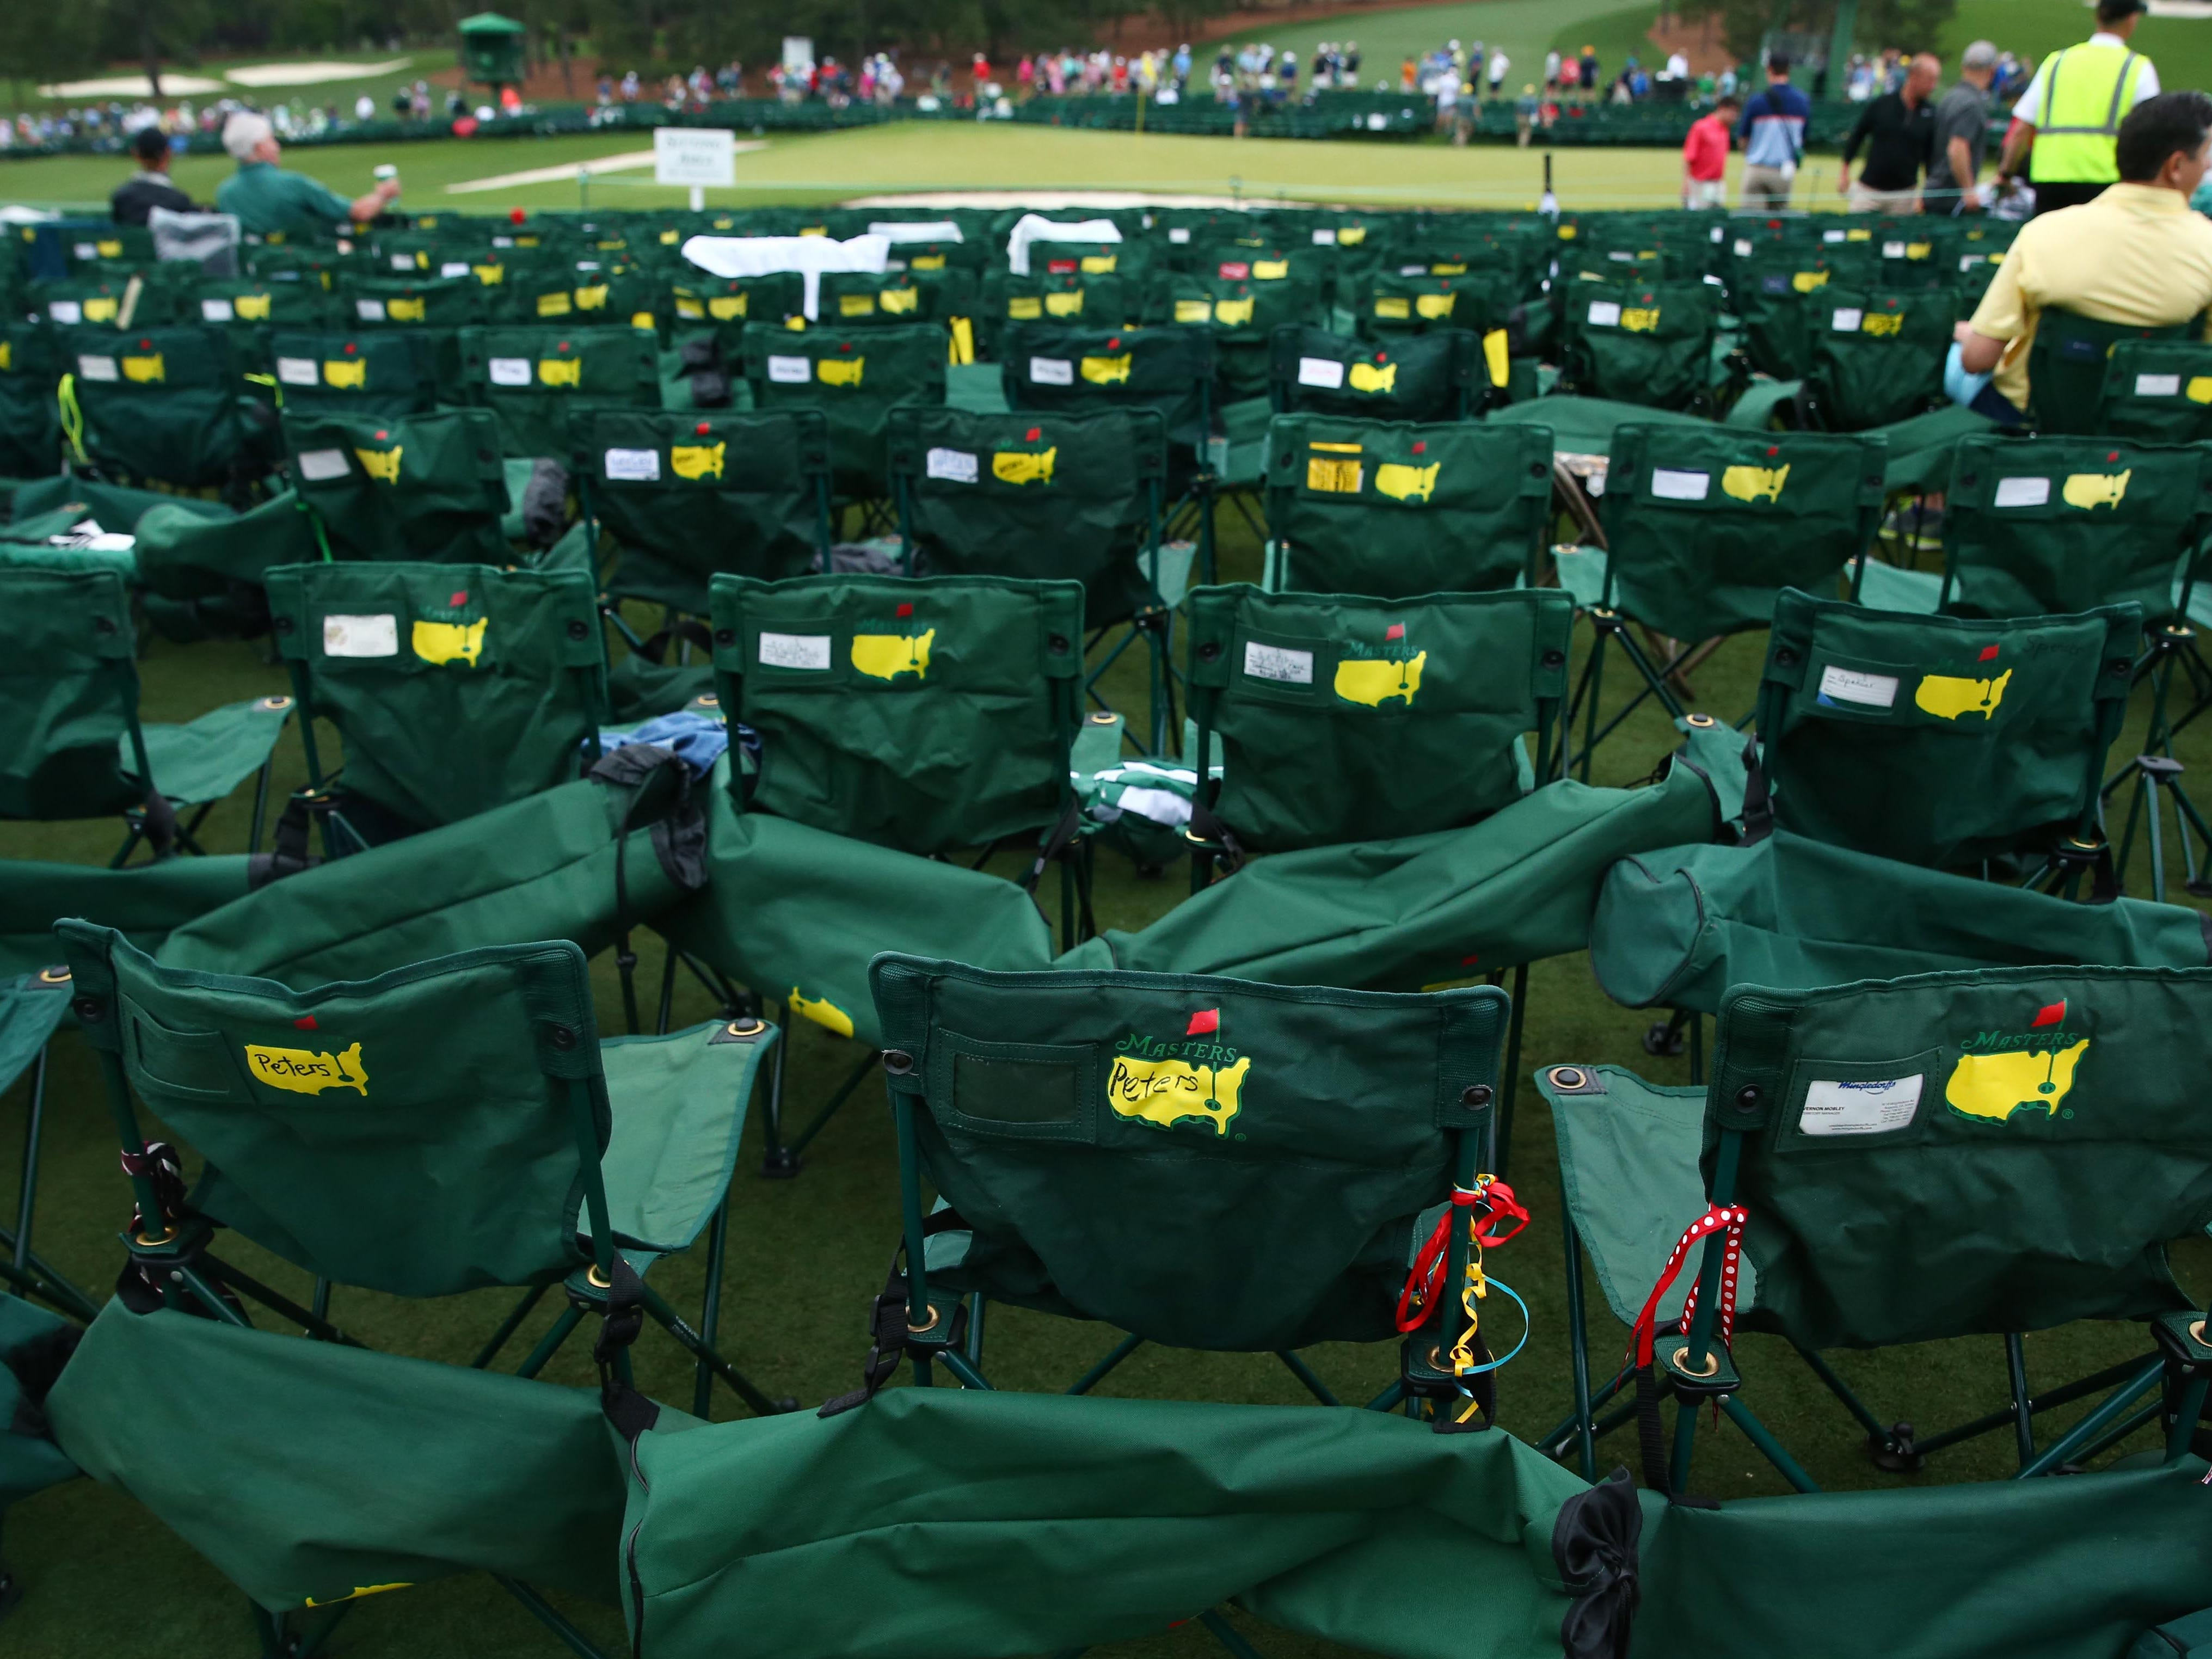 Chairs placed along the 18th green during the final round of The Masters.